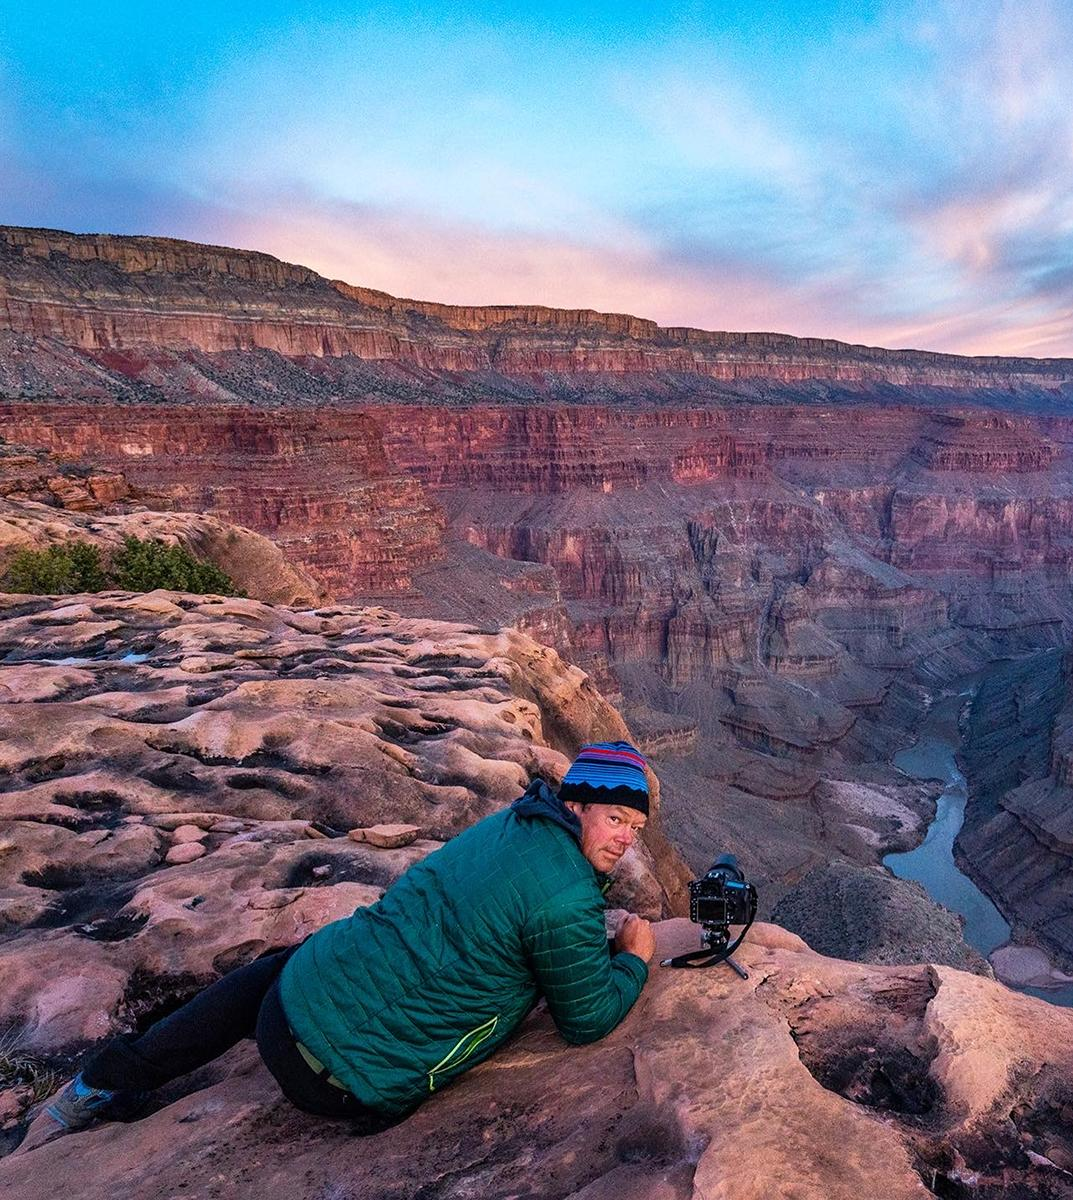 """Colorado photographer, filmmaker and writer Pete McBride, here on assignment at the Grand Canyon, will give the keynote address at CMC's online """"Envision Sustainability 2021"""" conference on April 23. The event is free and open to the public."""